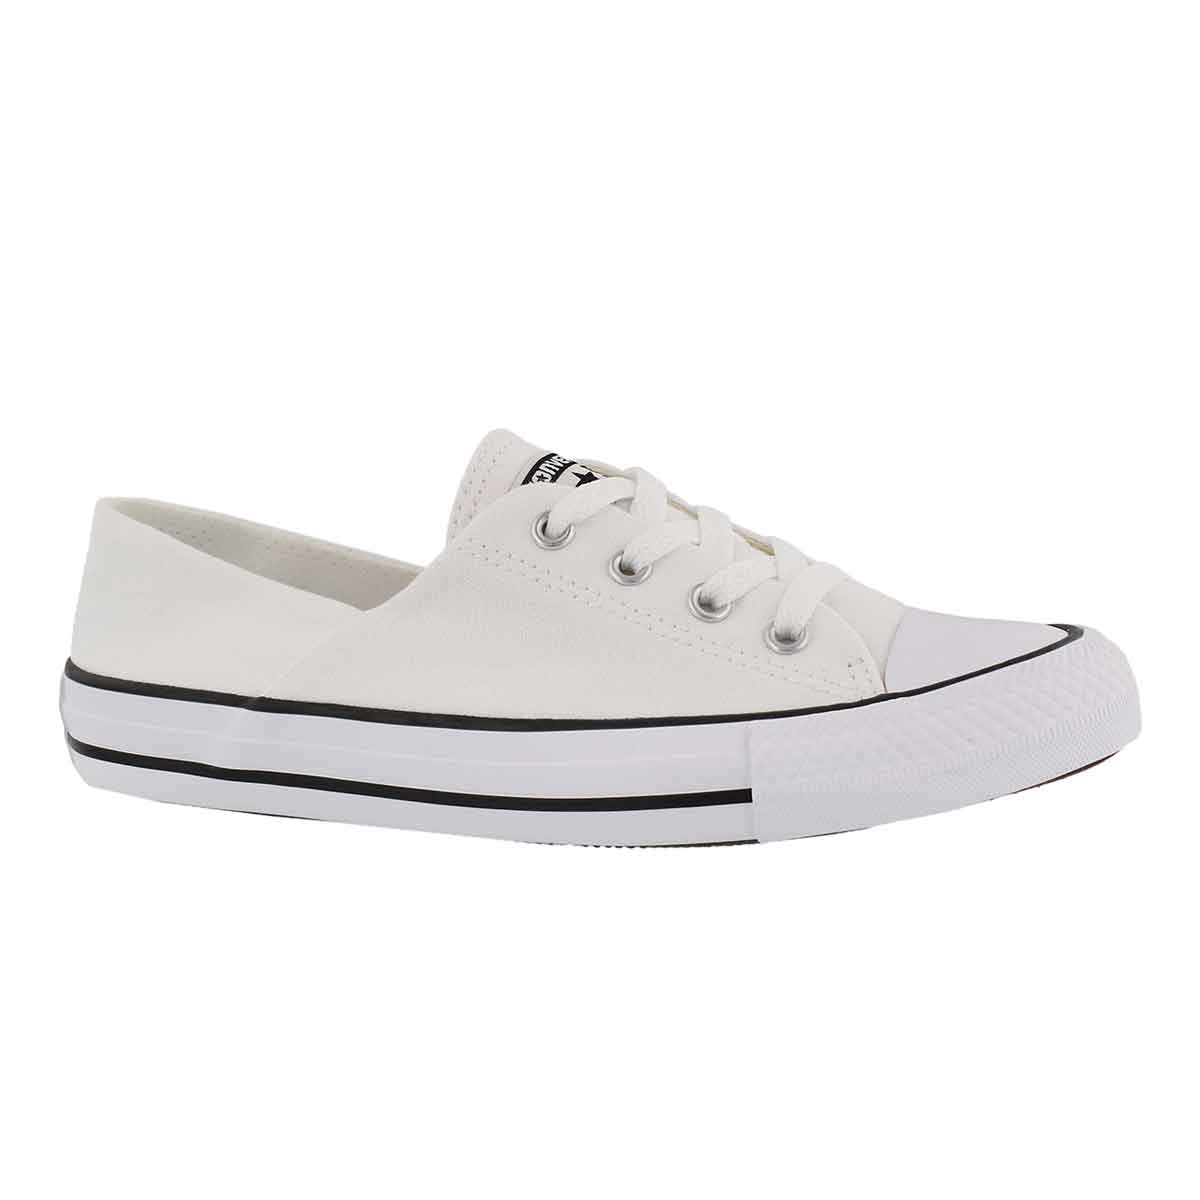 Women's CT ALL STAR CORAL white sneakers